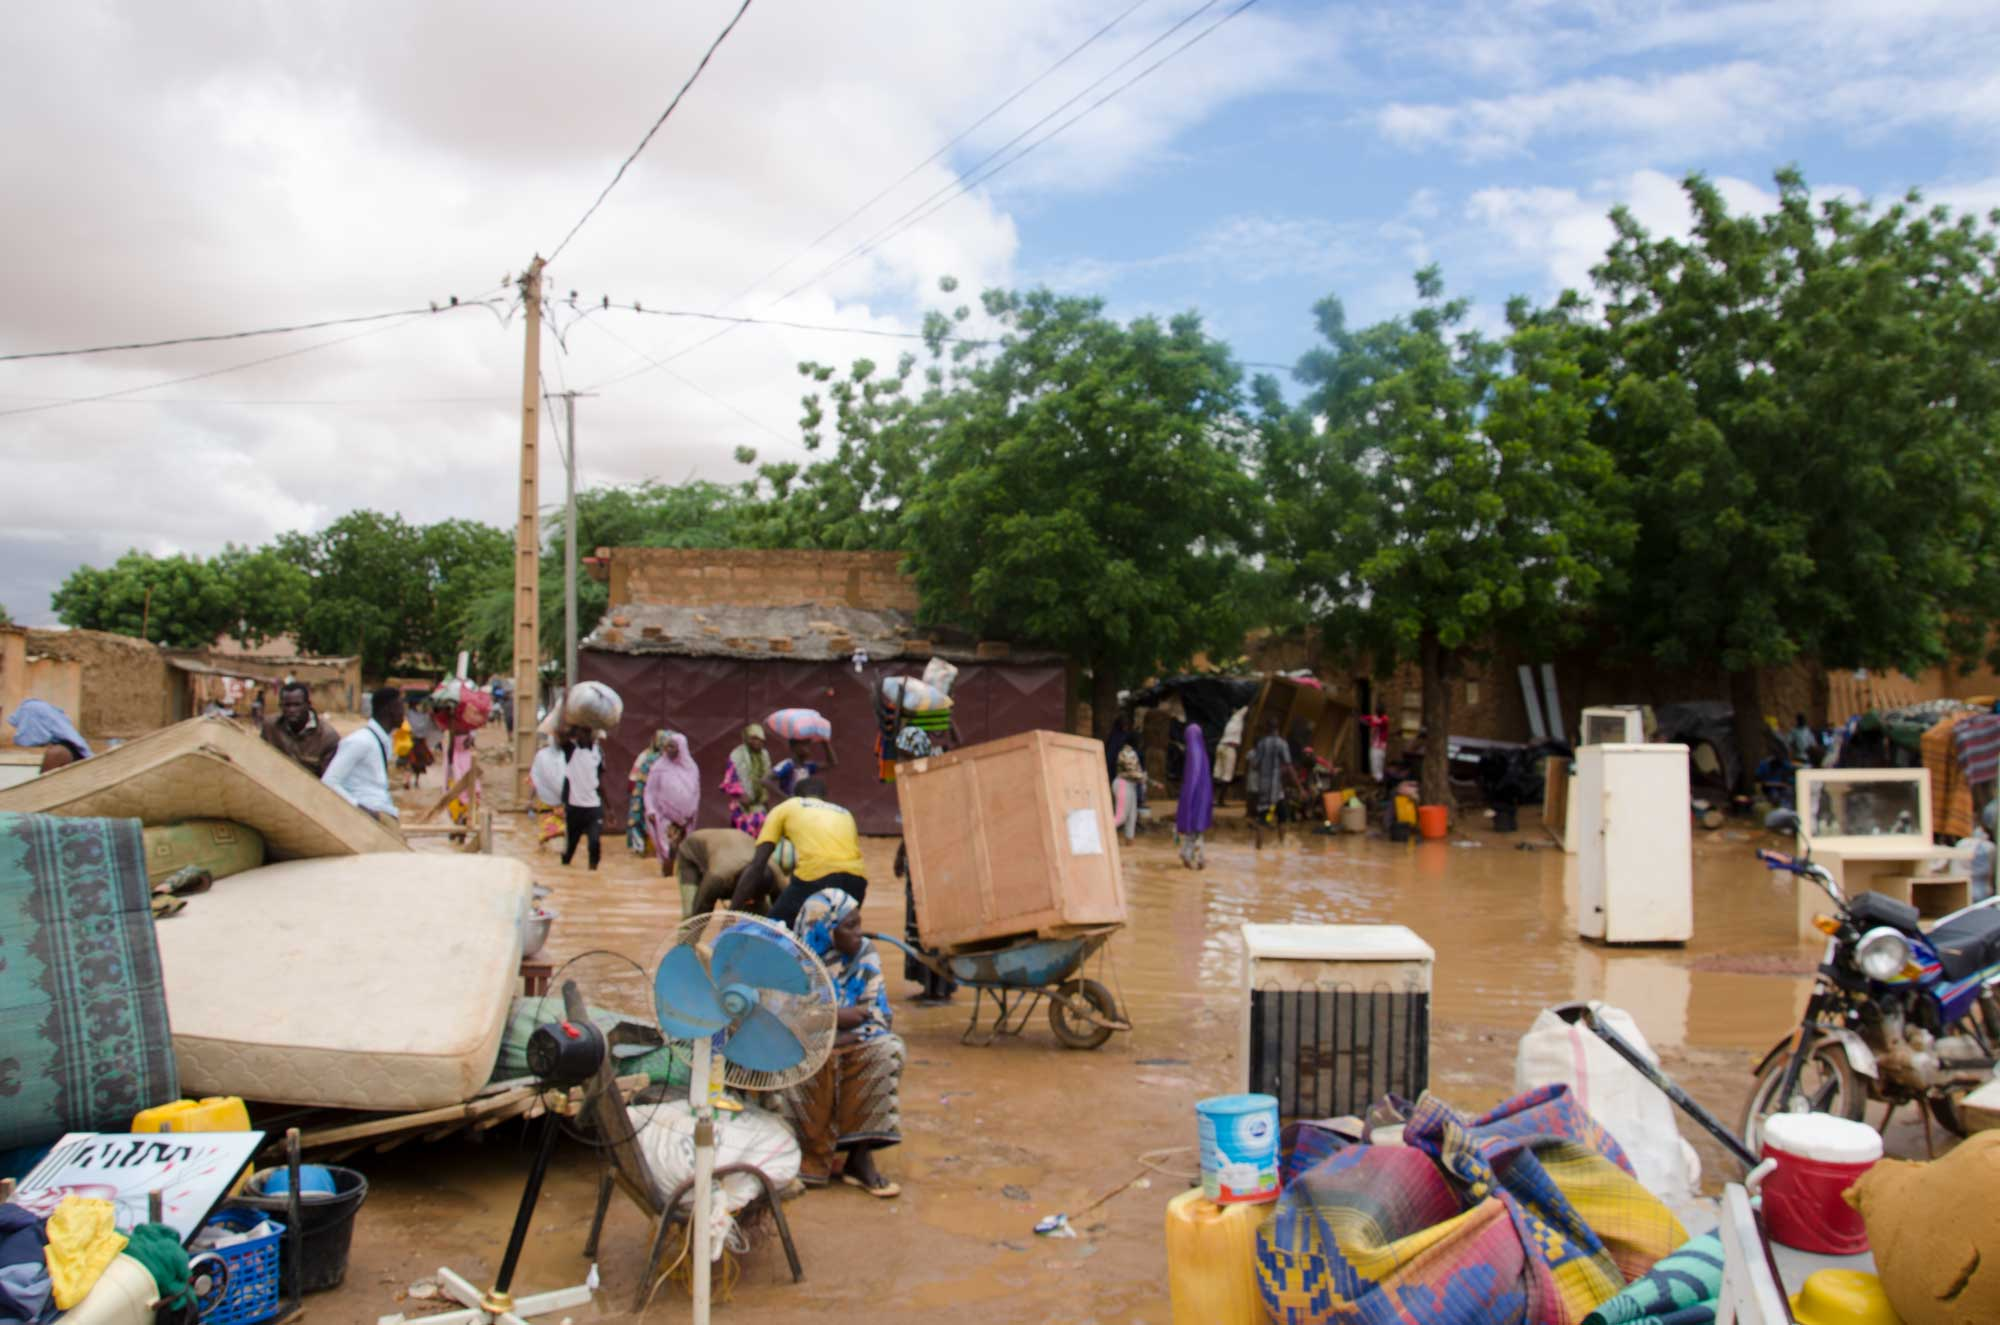 People with wheelbarrows and crass move around in floodwaters in a city street.